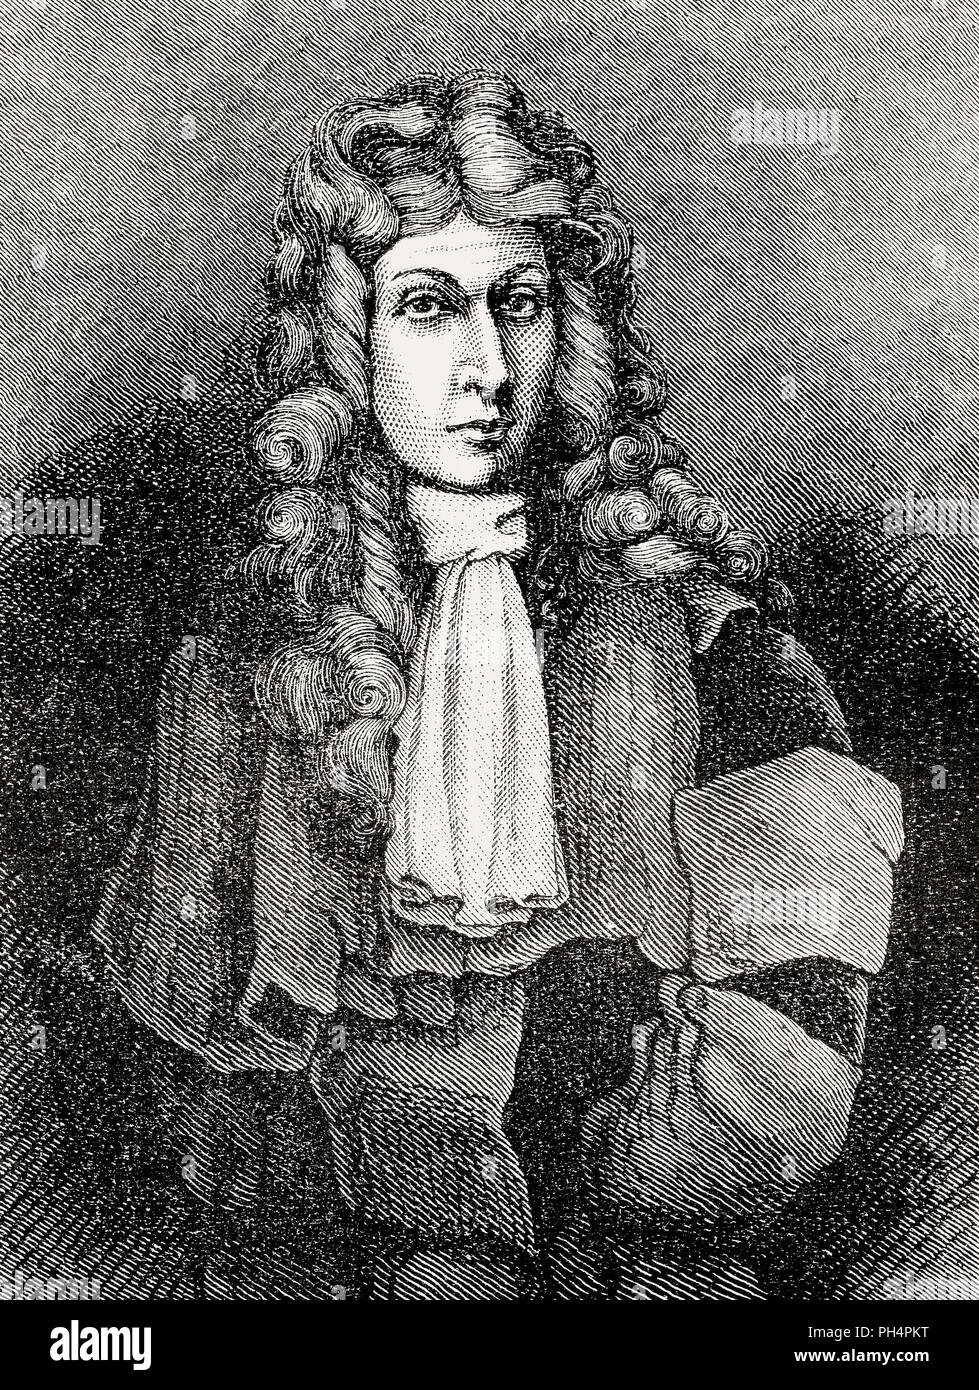 Sir George Lockhart of Lee, 1673 – 1731, a Scottish writer, spy and politician - Stock Image